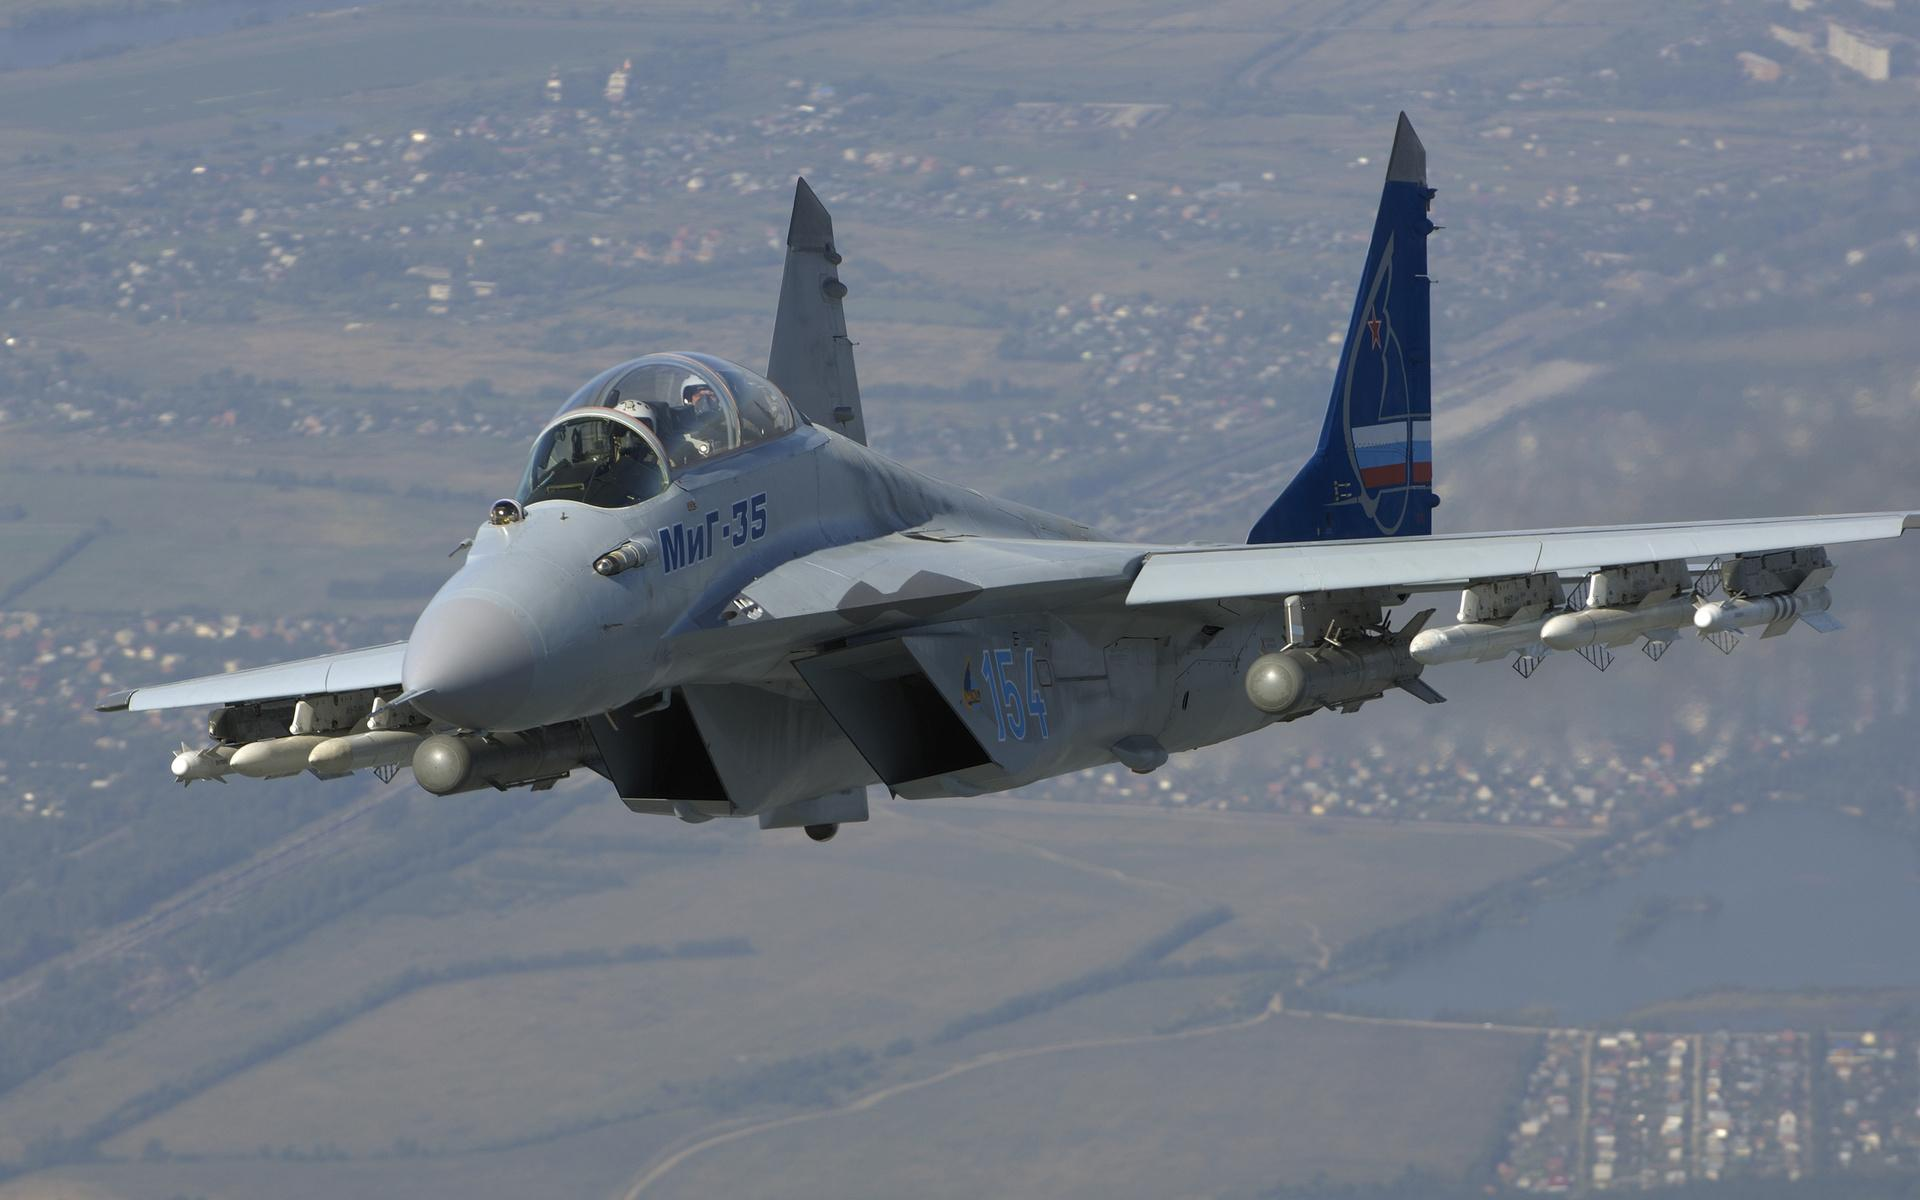 Mikoyan MiG-35 wallpapers HD quality